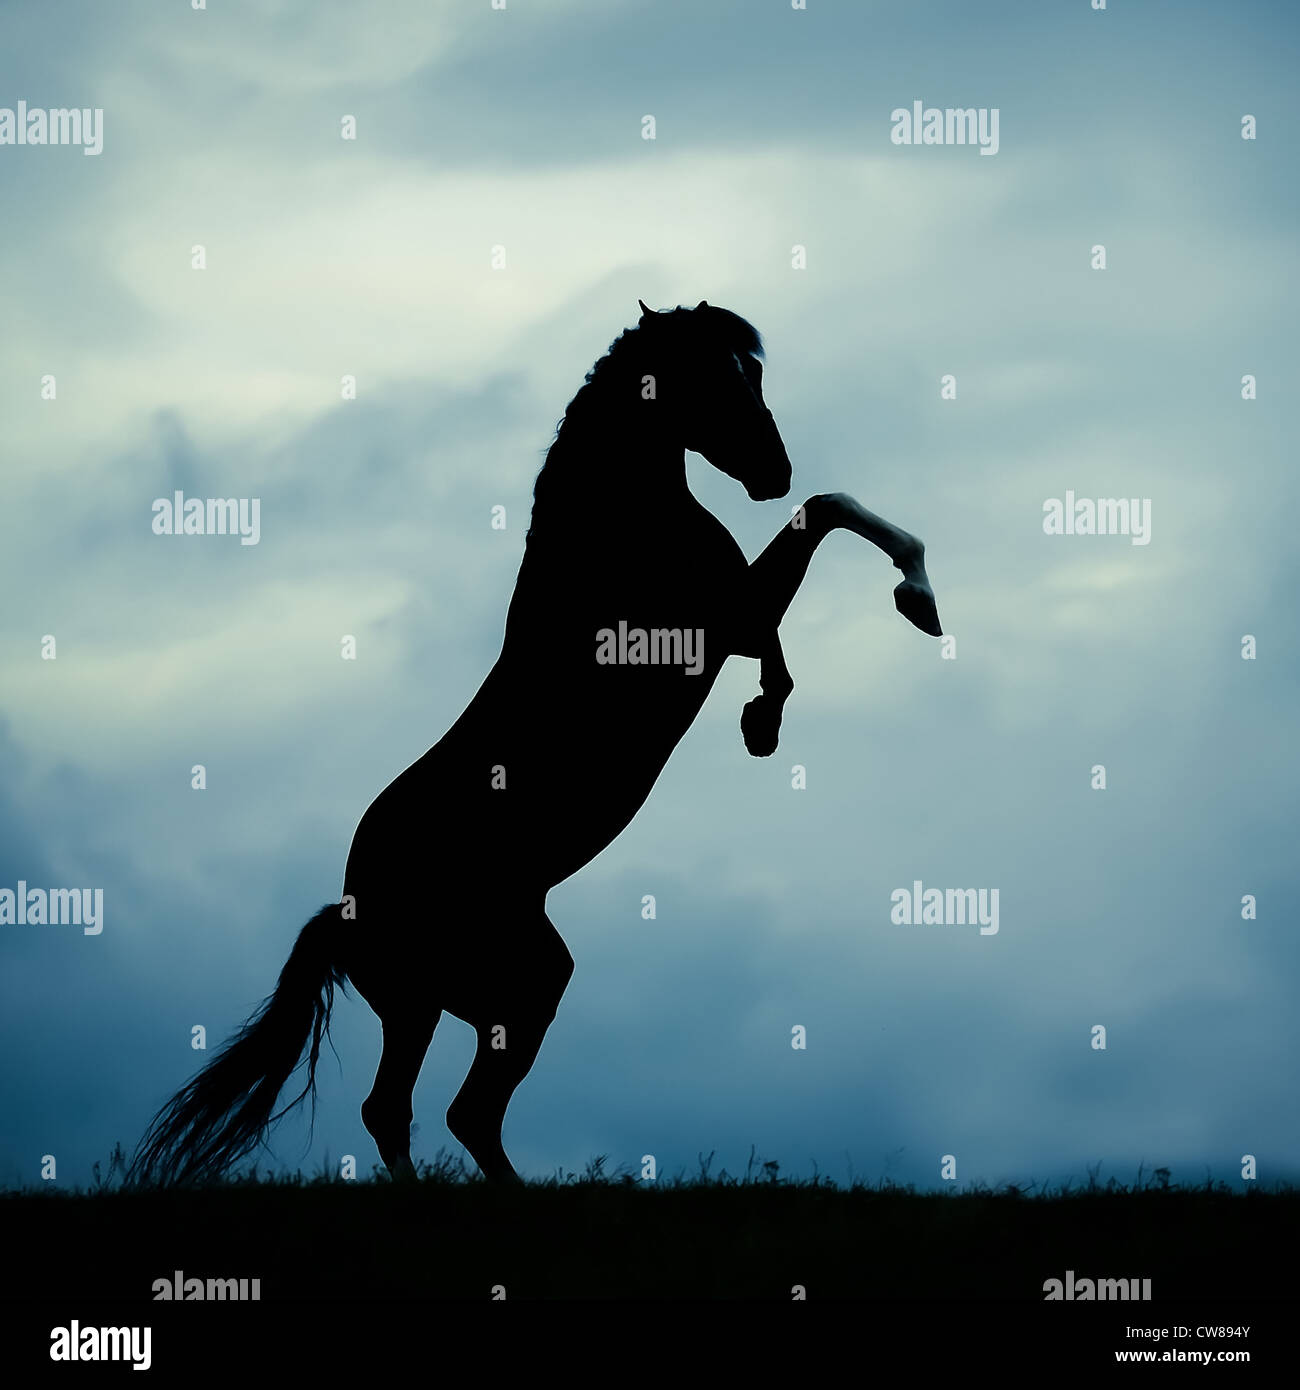 Rearing Horse Silhouette High Resolution Stock Photography And Images Alamy